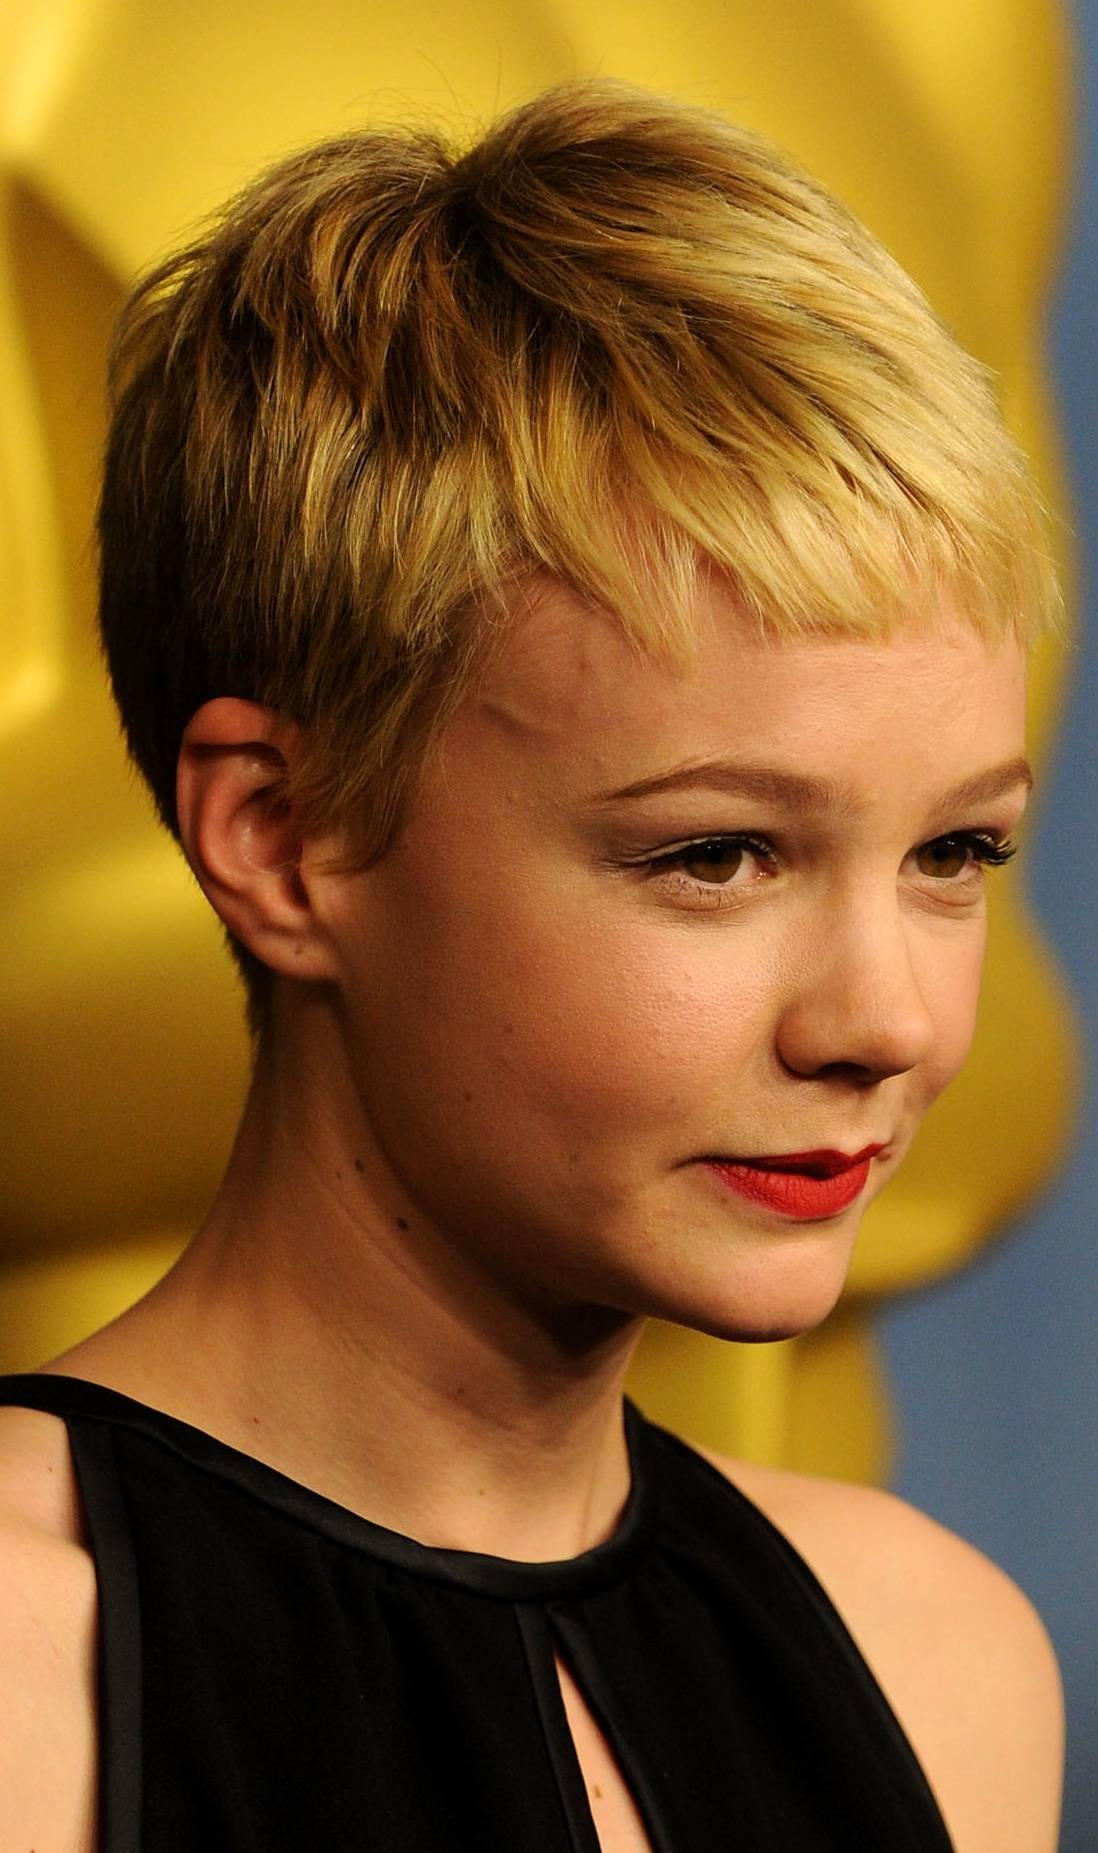 Hairstyles short pixie - 35 Facts To Know Before Doing Pixie Cut For Women Hairstyles For Woman